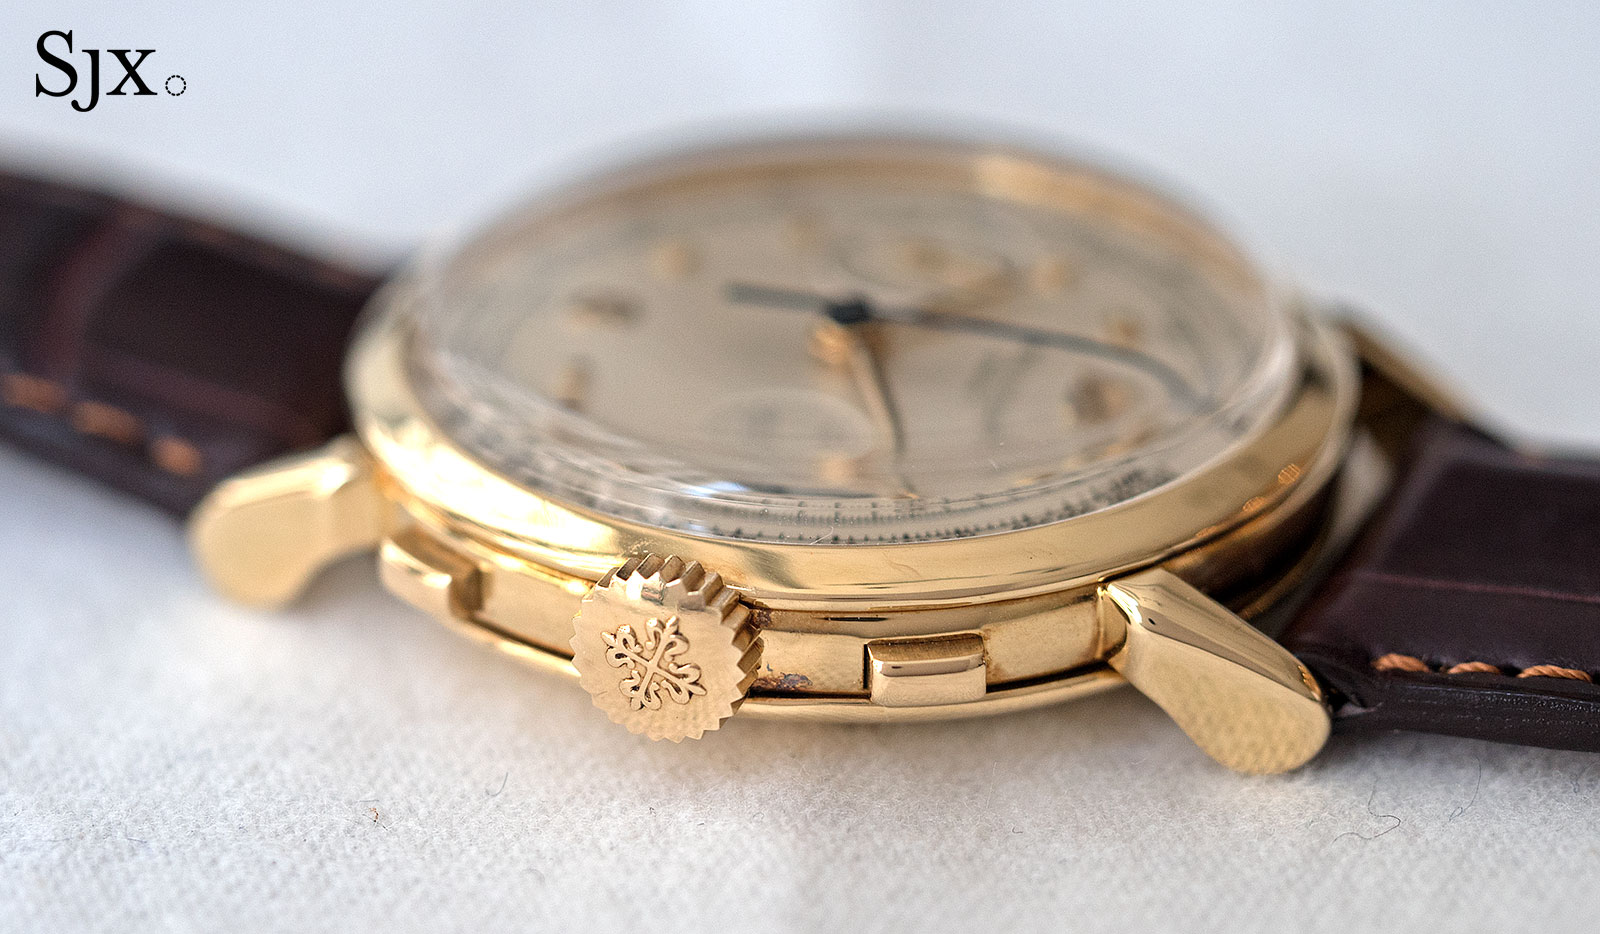 Patek Philippe 1579 yellow gold 3